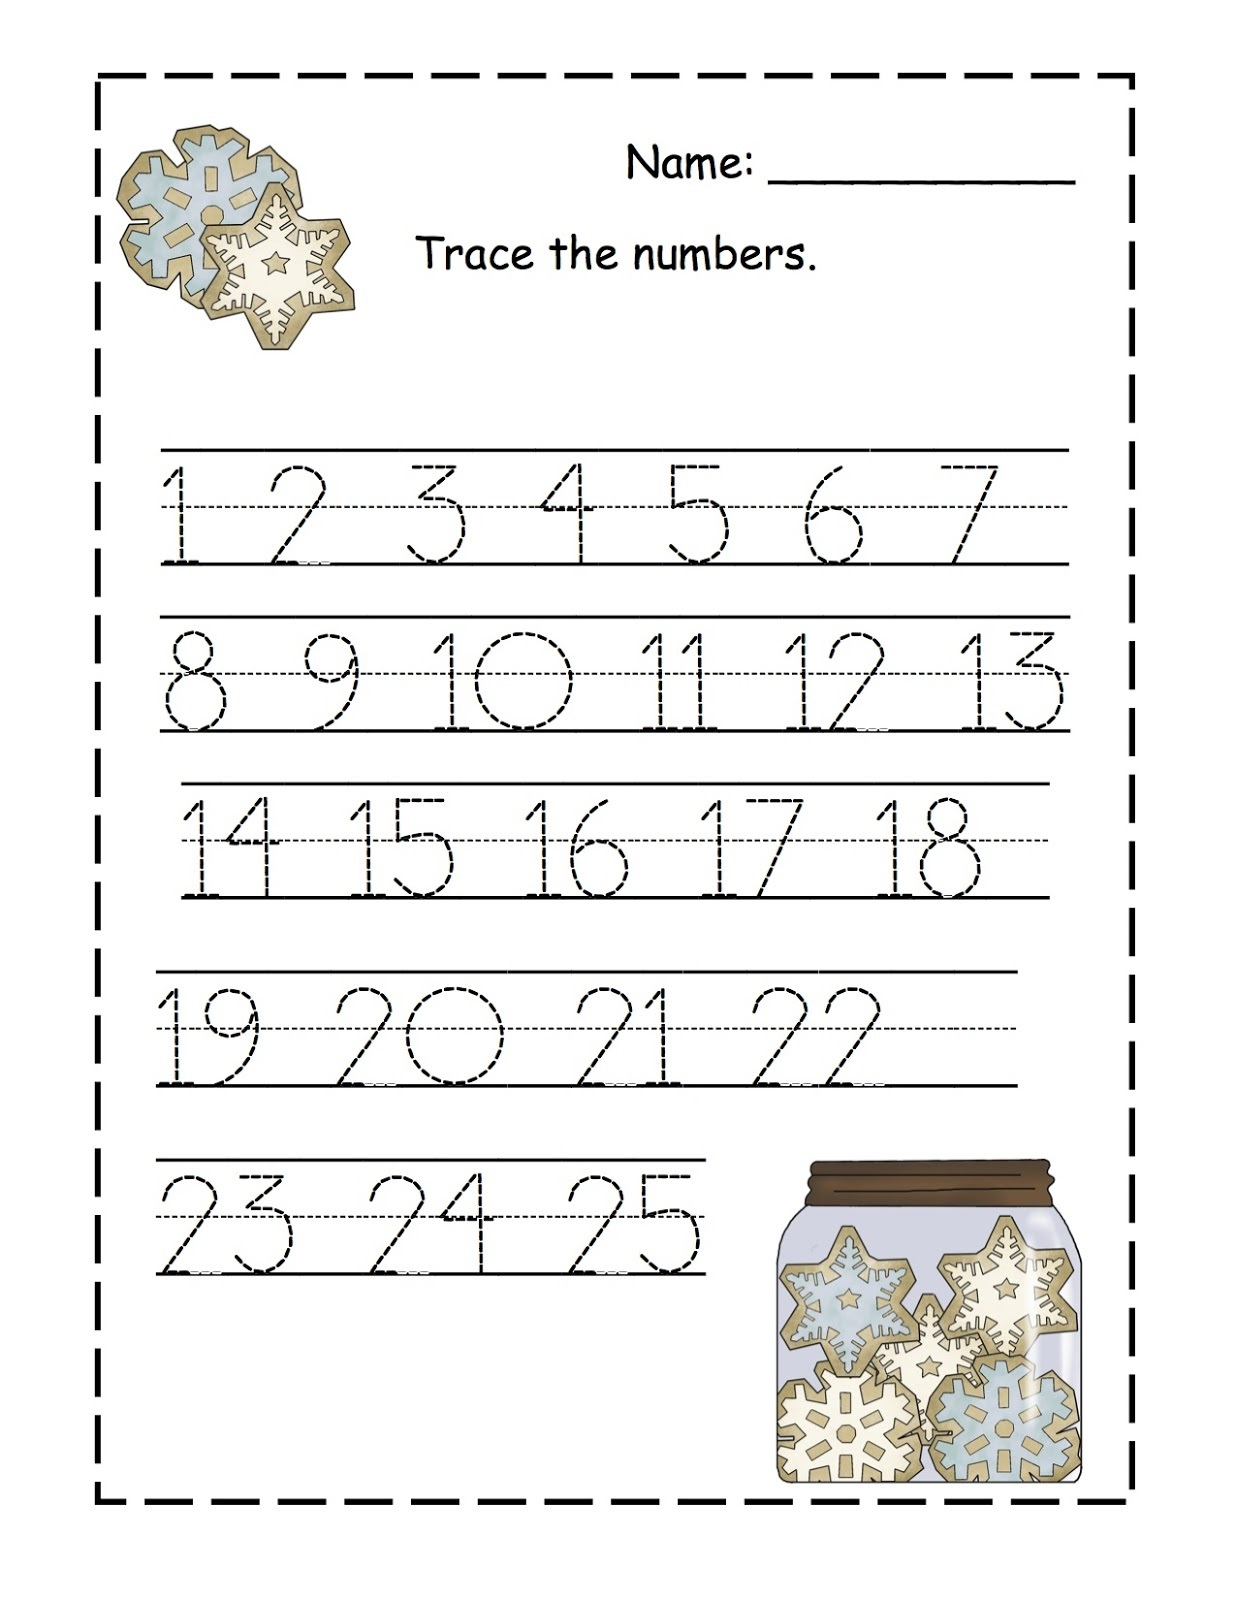 Free Tracing Worksheets Make Your Own Printable Alphabet in Make A Name Tracing Worksheet